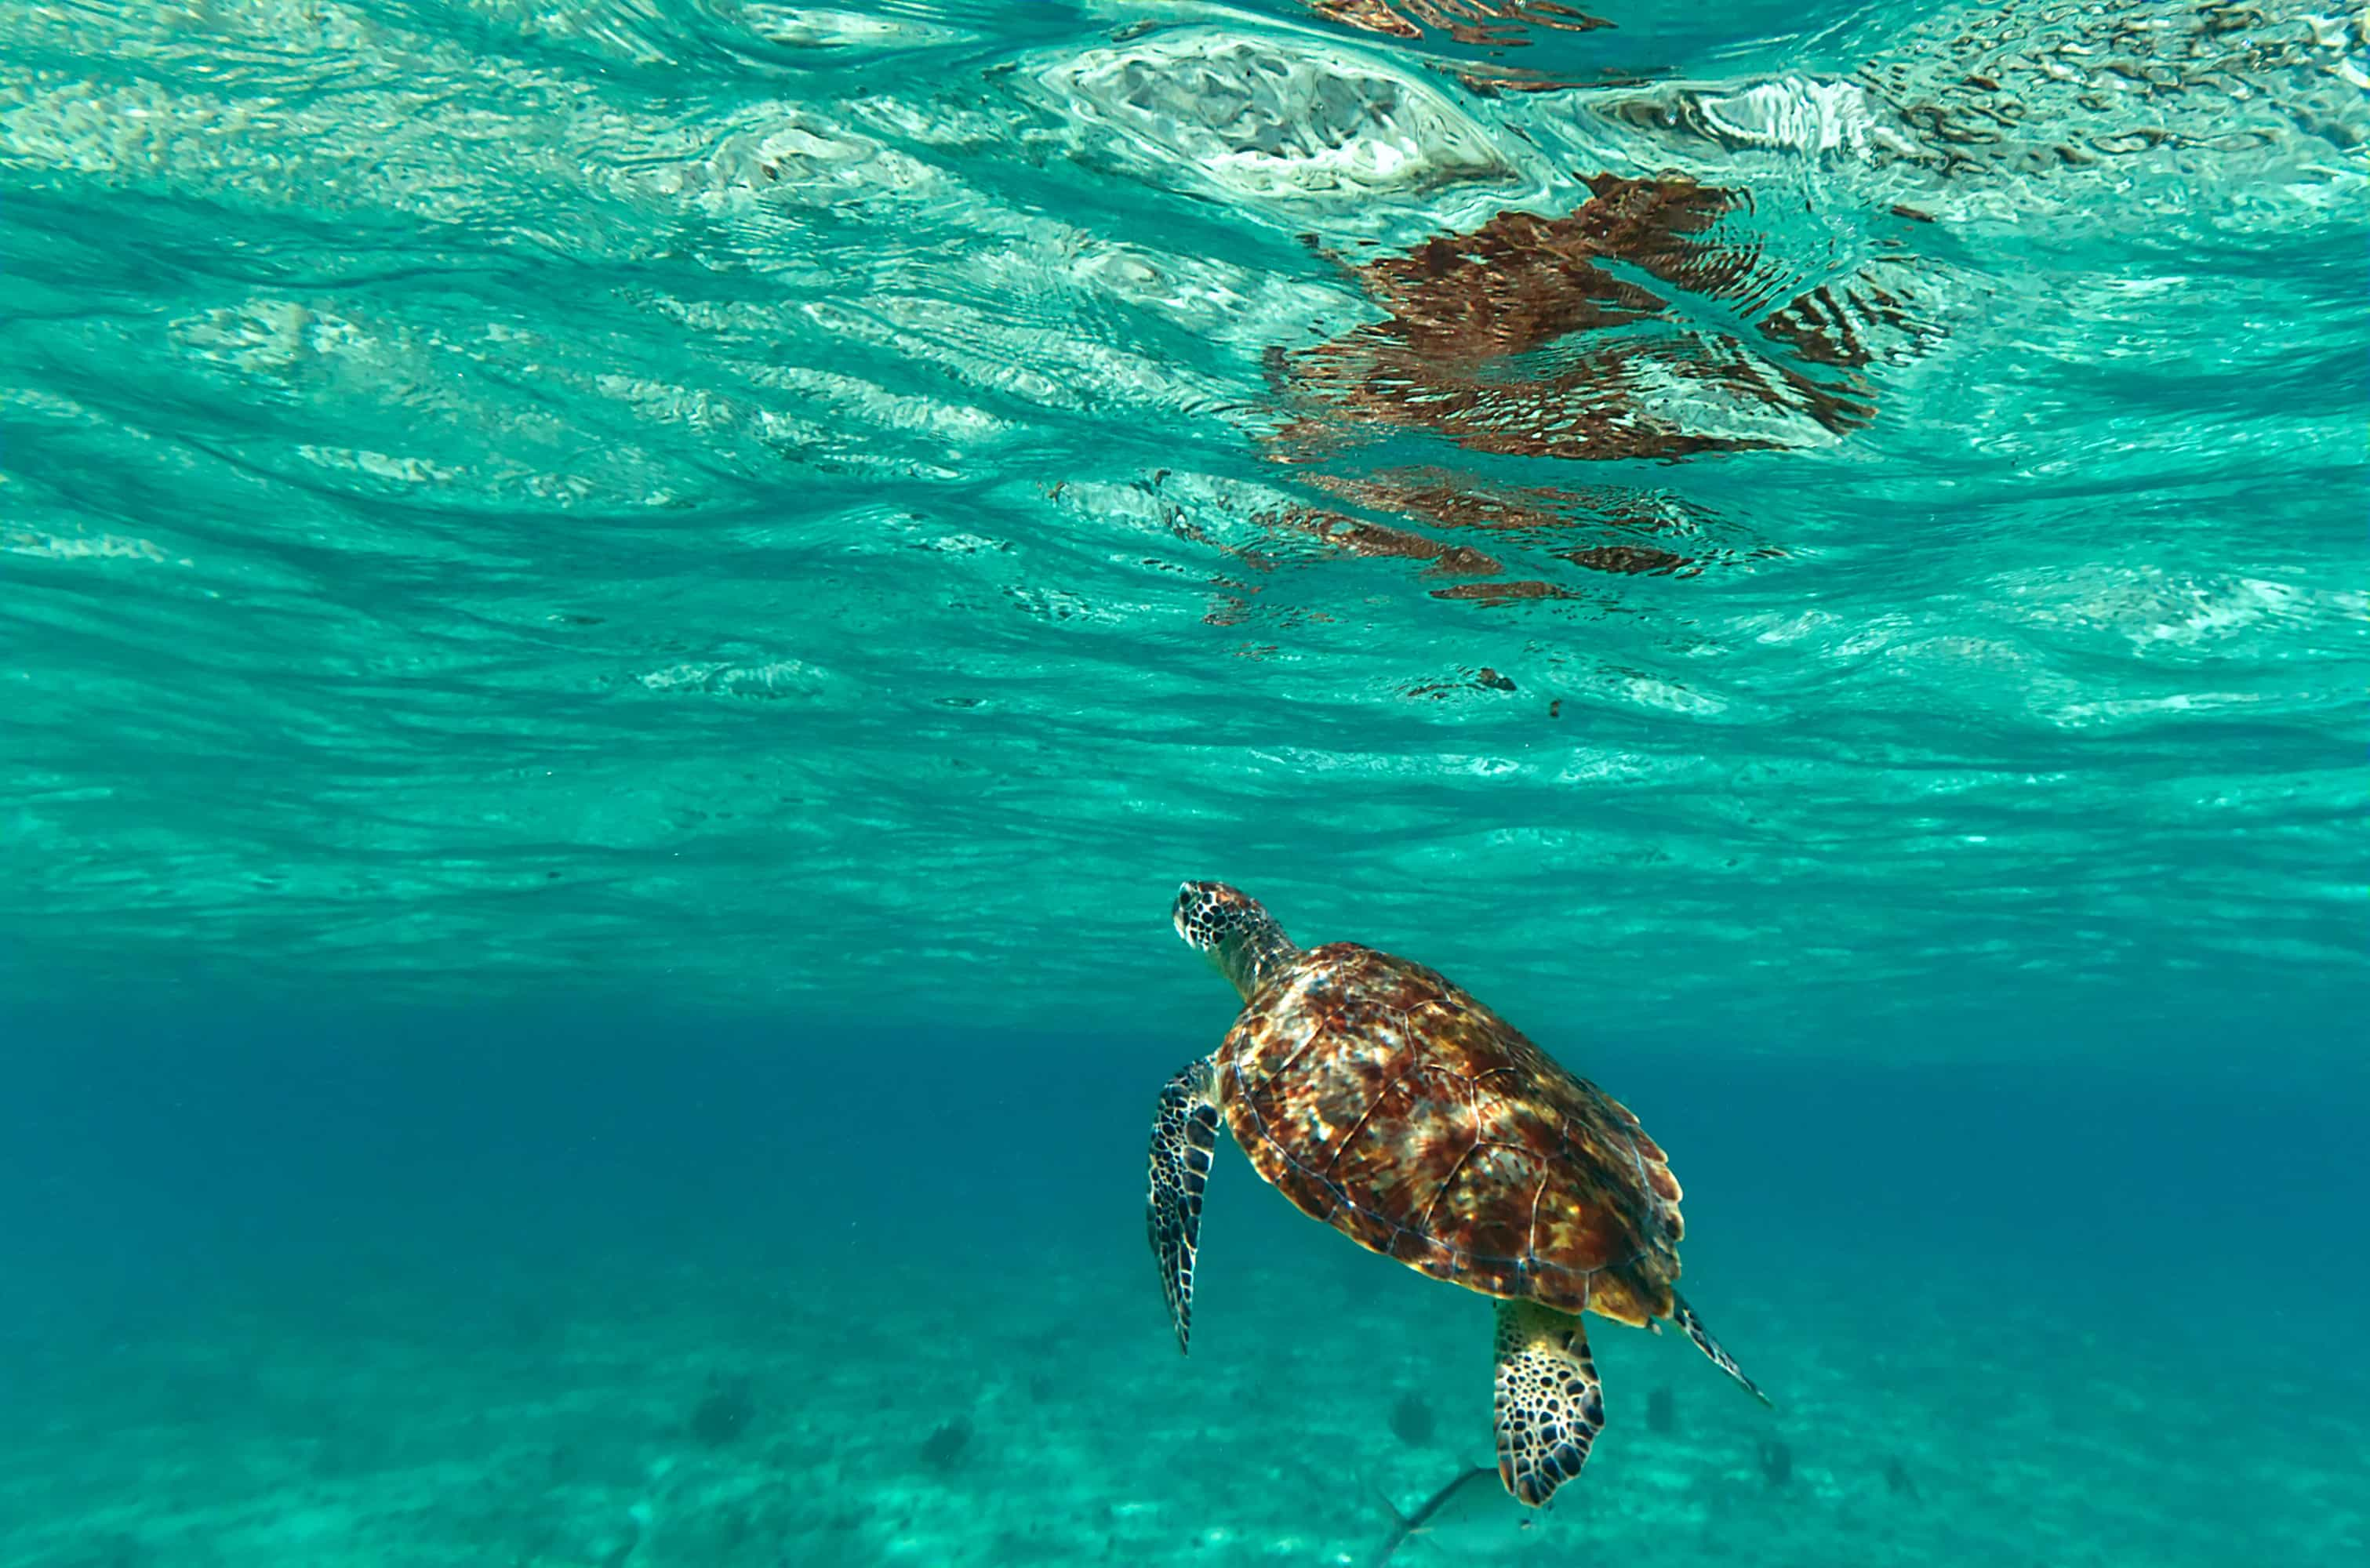 under water shot of sea turtle in Mexico for winter escape